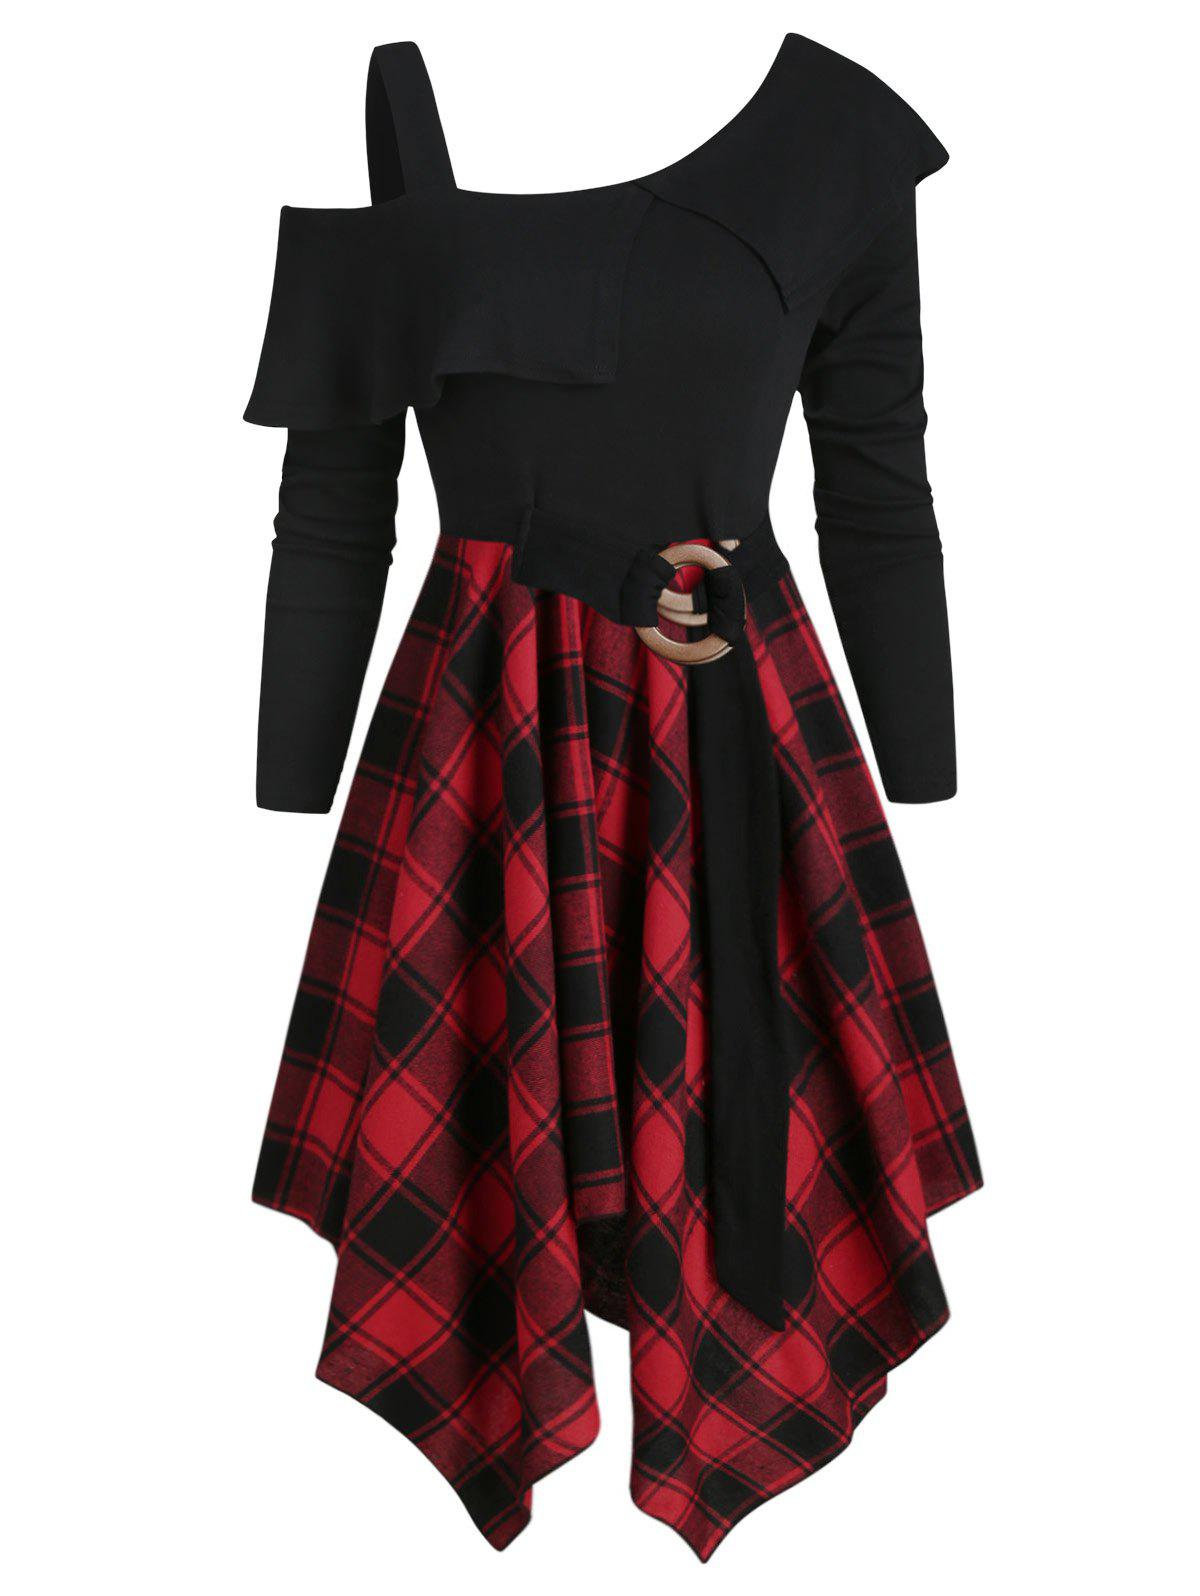 Plaid Skew Neck Belted Handkerchief Dress - RED WINE S